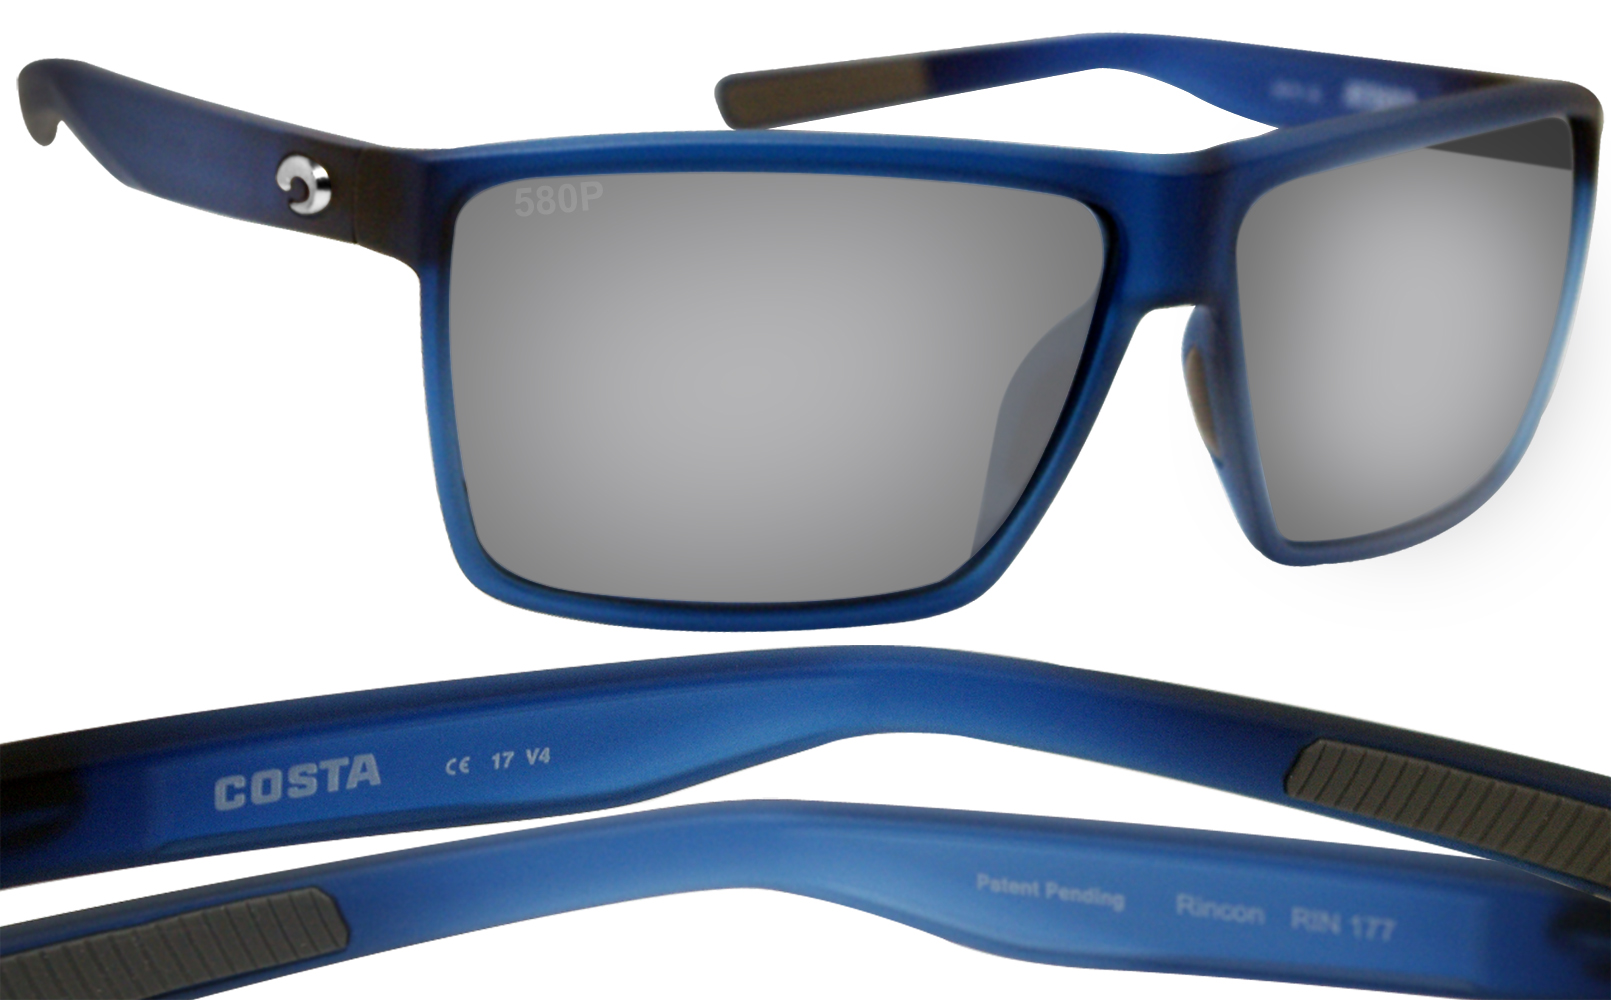 0bb620bca7 Costa Del Mar Rincon Atlantic Blue Gray Silver Mirror 580P Plastic  Polarized